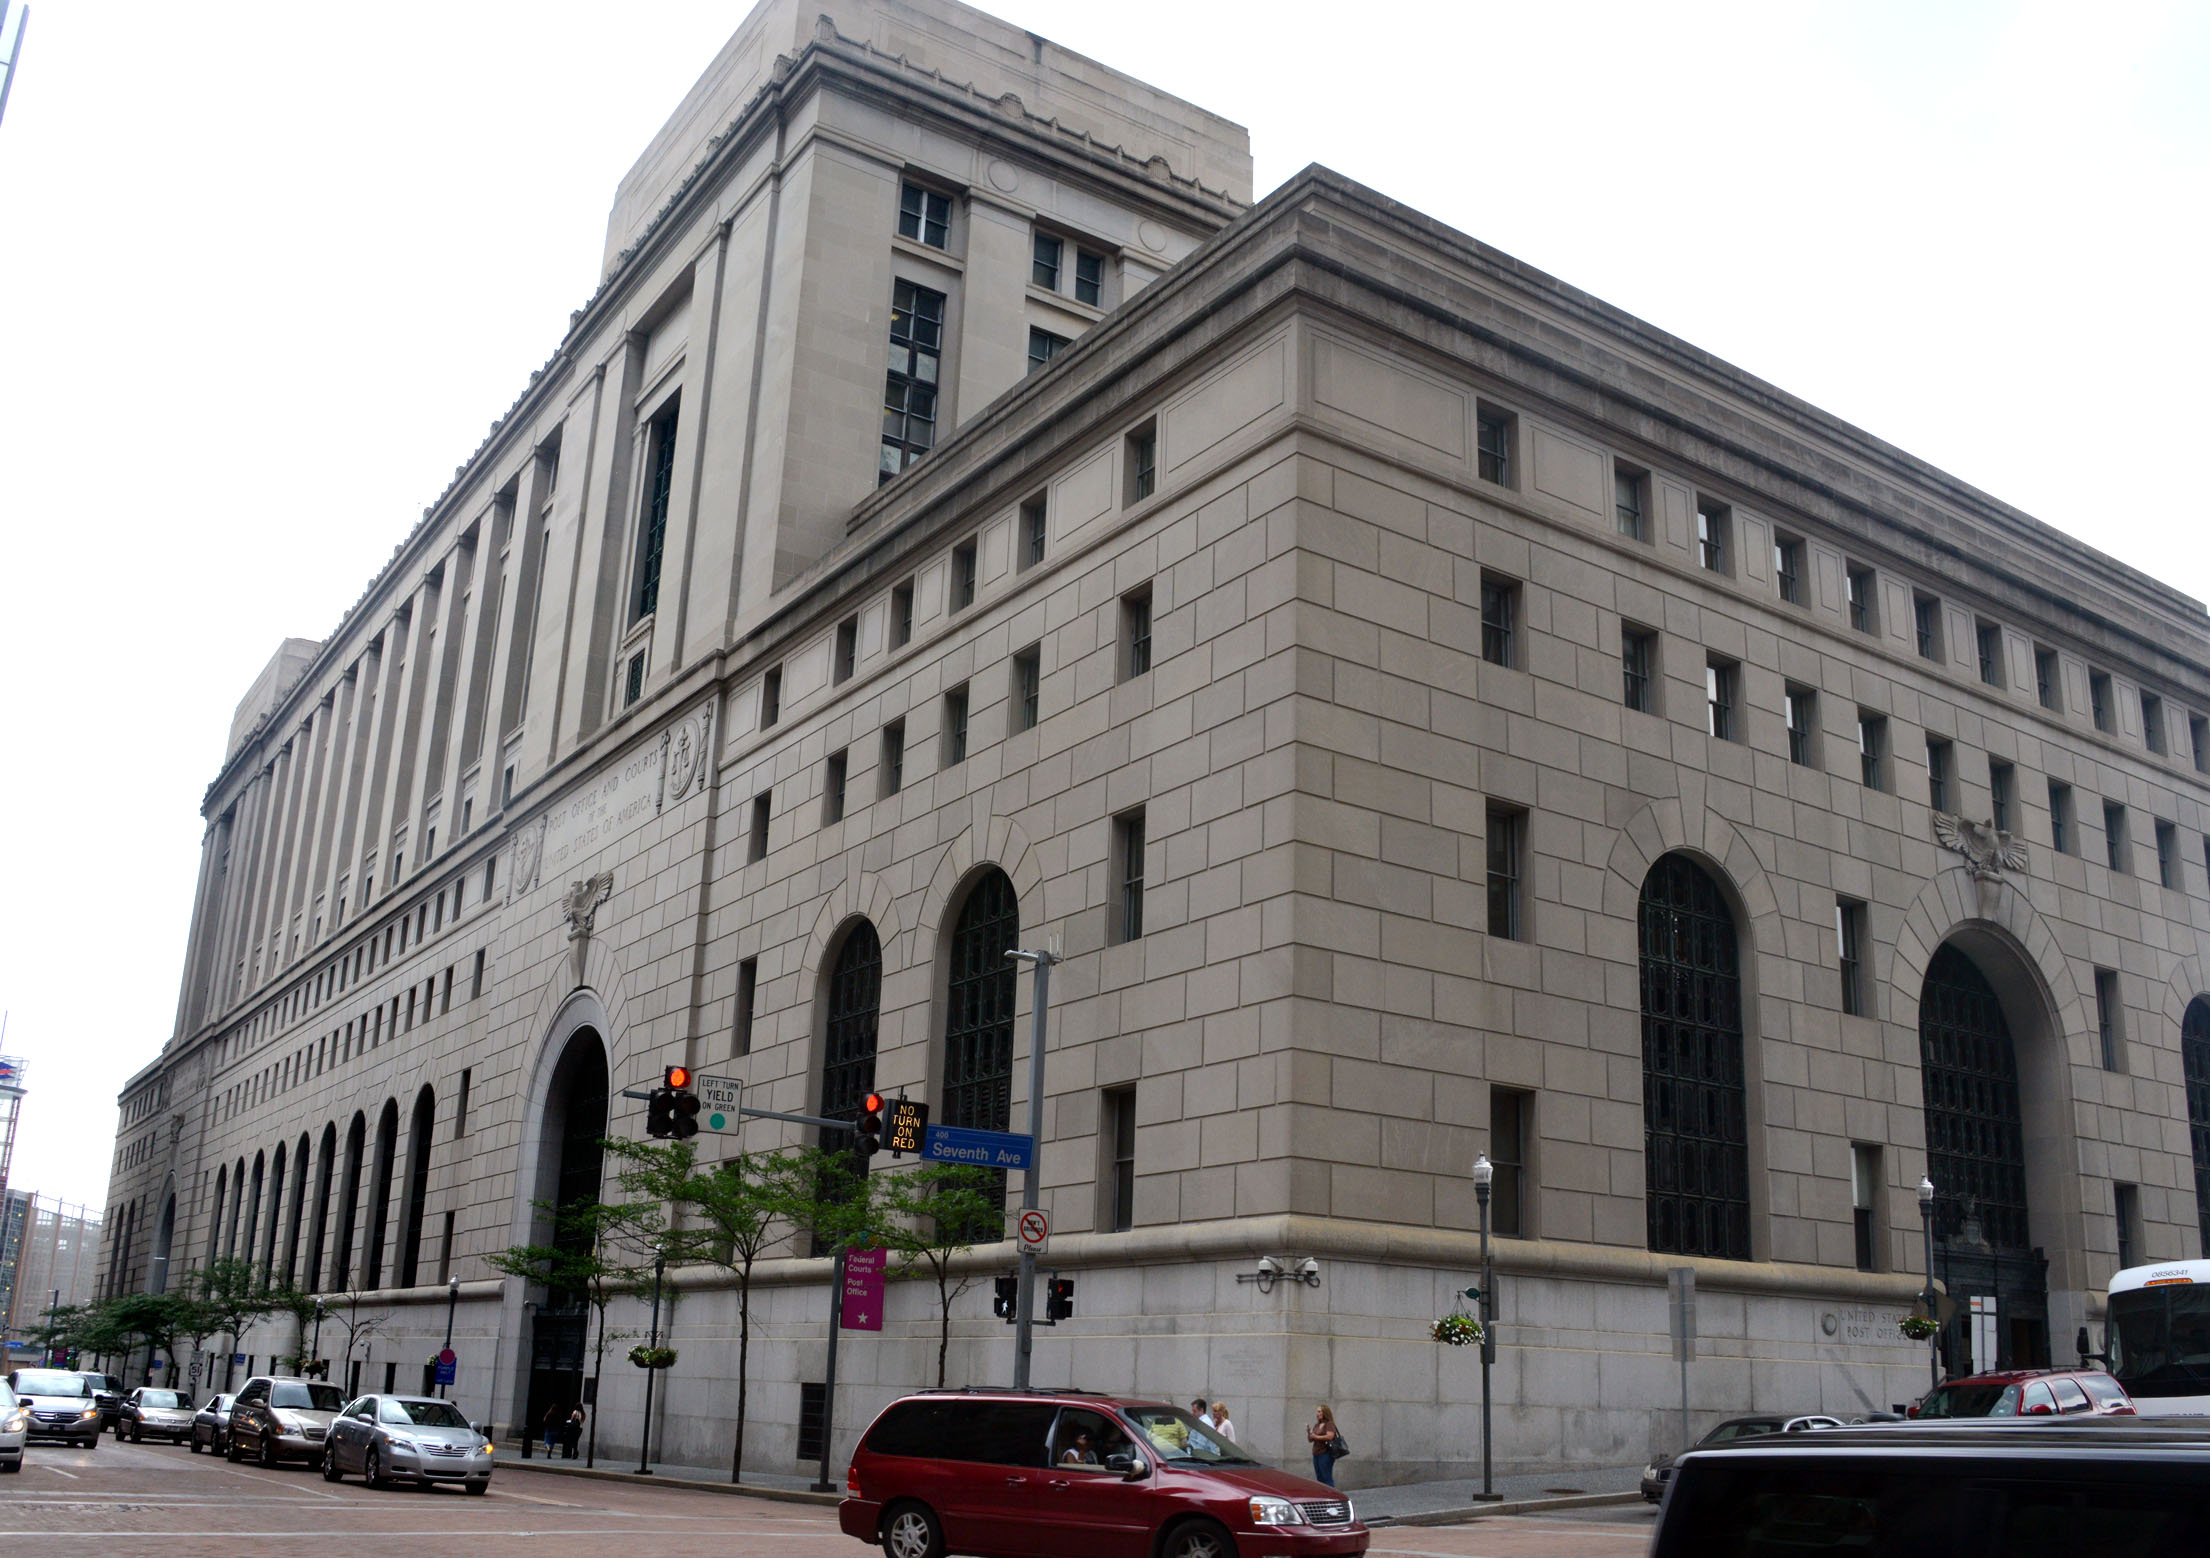 The federal building that sits on downtown Pittsburgh's Grant Street still serves as the United States District Court for the Western District of Pennsylvania.  However, the postal services that were once housed there have since relocated.